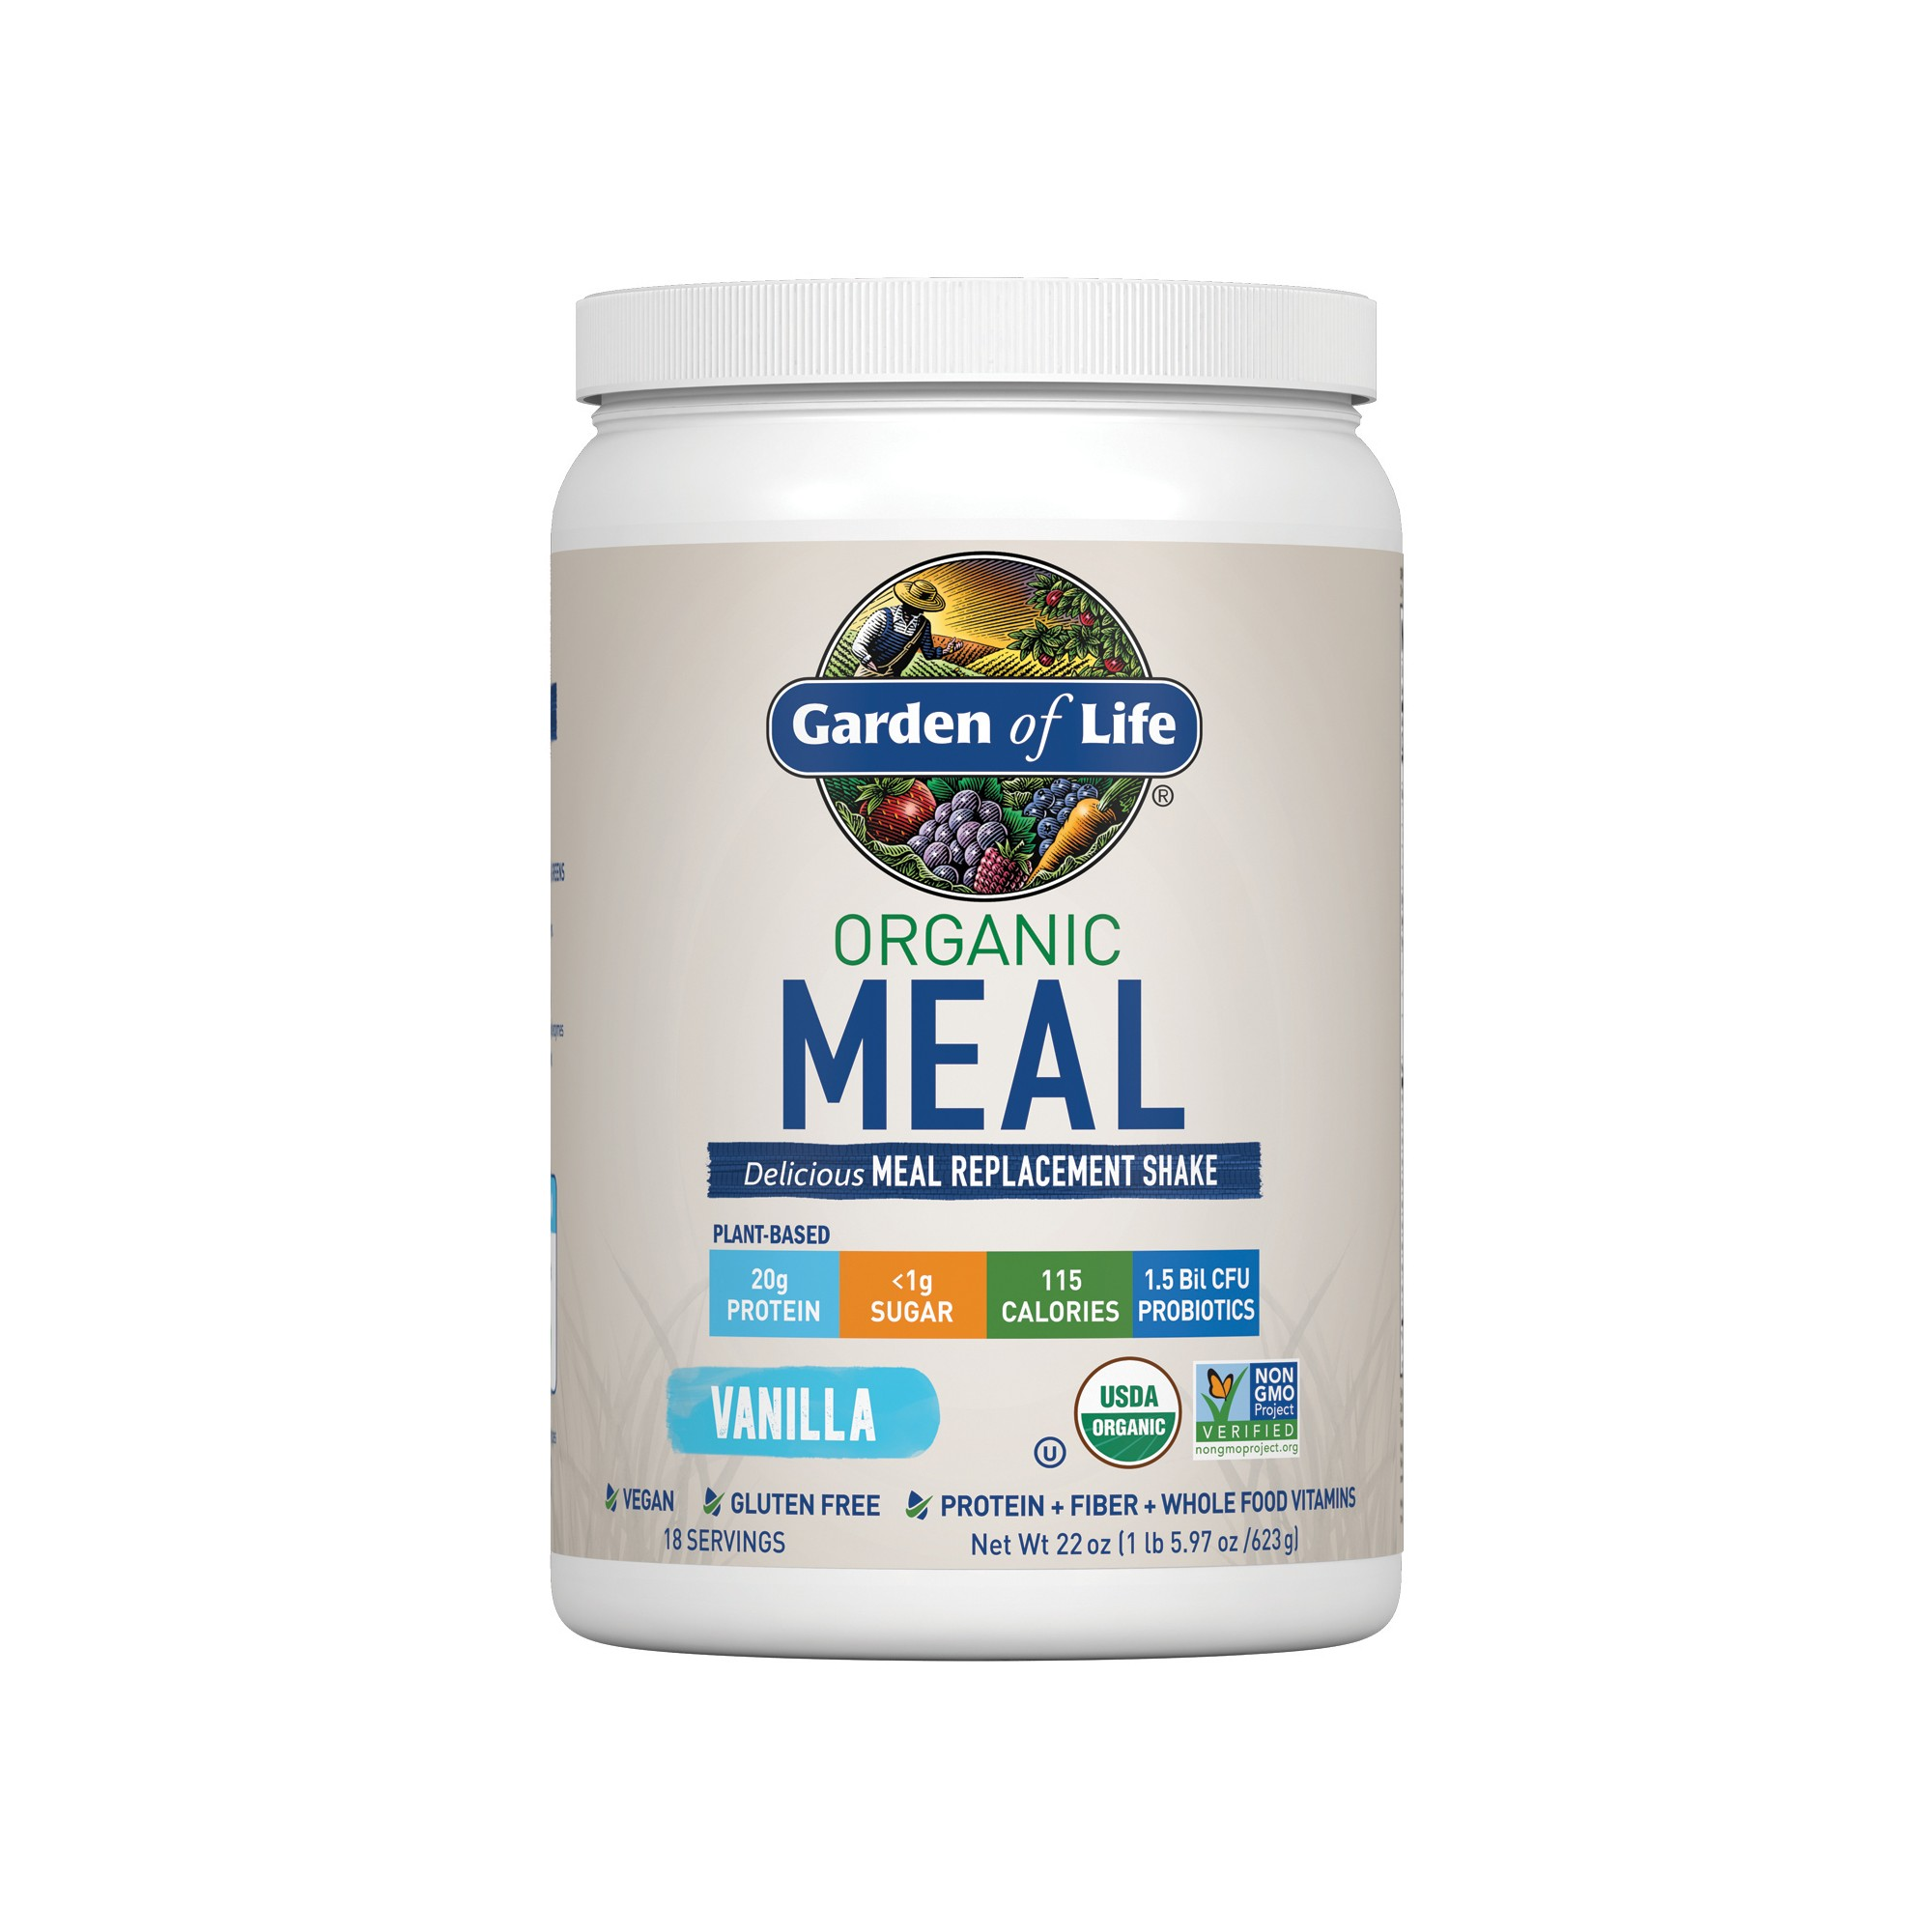 Garden of Life Organic Vegan Meal Replacement Shake Mix